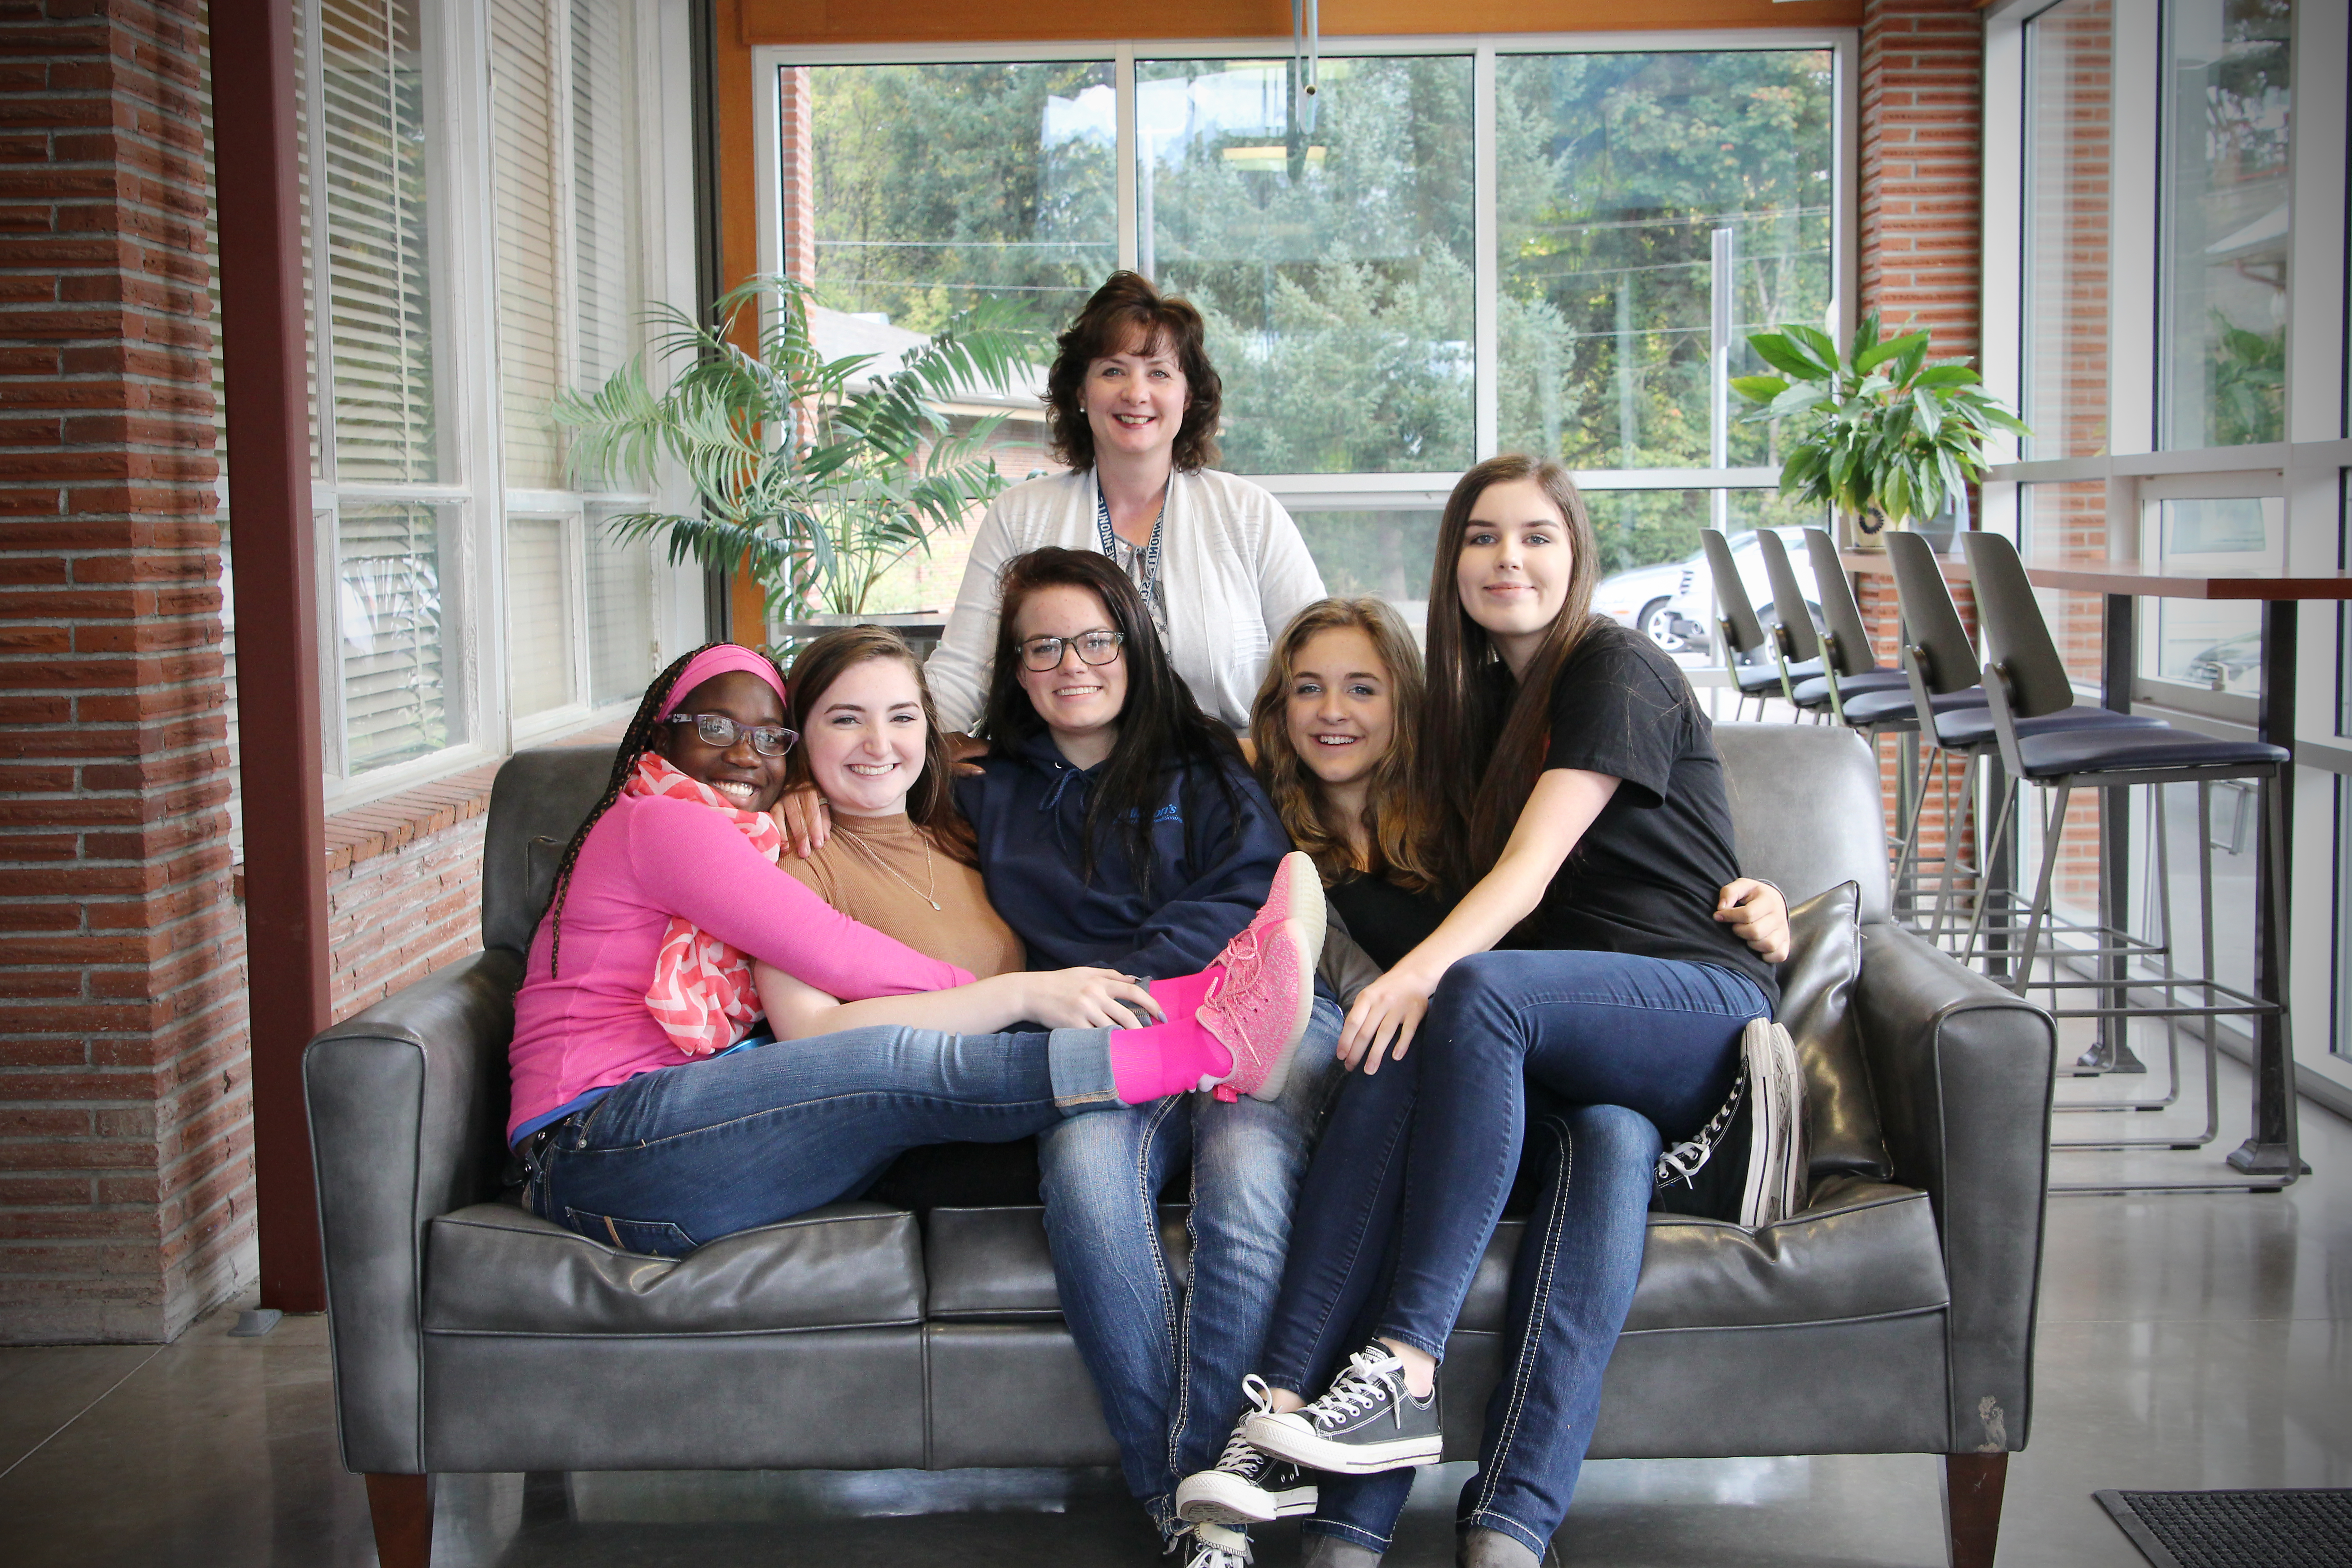 Nurturing community and small groups